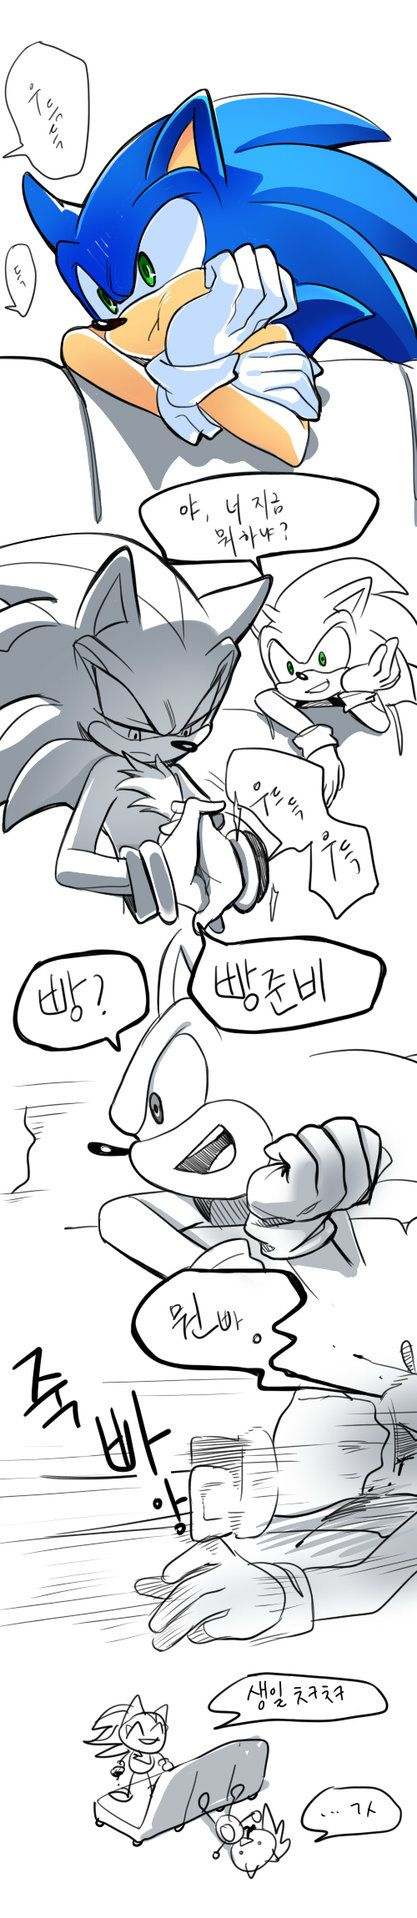 Happy B-day sonic  Sonic: What are you doing Shadow: cracks knuckles, says preparing for bread. Sonic: bread? Shadow: *punches* * mon bread  Happy Birthday! ^^ Sonic: .........thx.... * mon bread is world play from the pronuncication and word of bread instead of preparing bread he punches him.